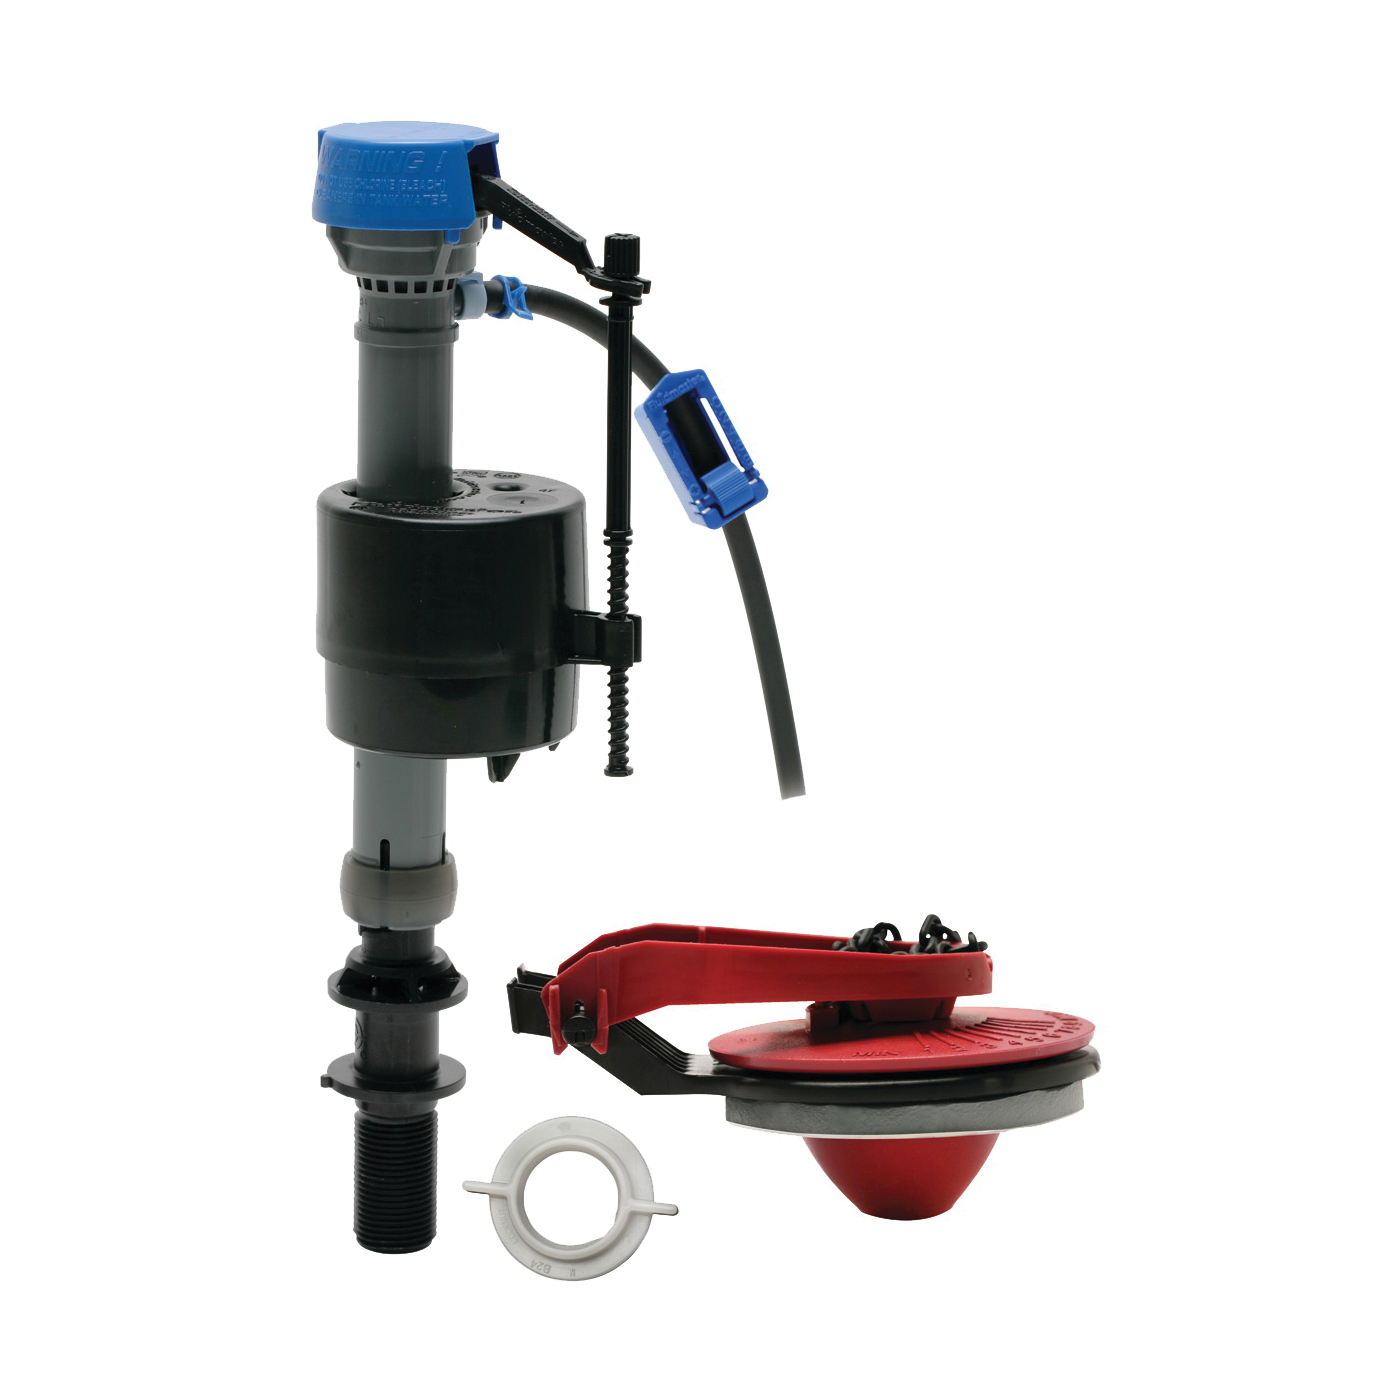 Picture of FLUIDMASTER 400CARP Toilet Tank Repair Kit, Plastic, For: 2 in Toilets, 1.28 to 1.6 gpf Toilets